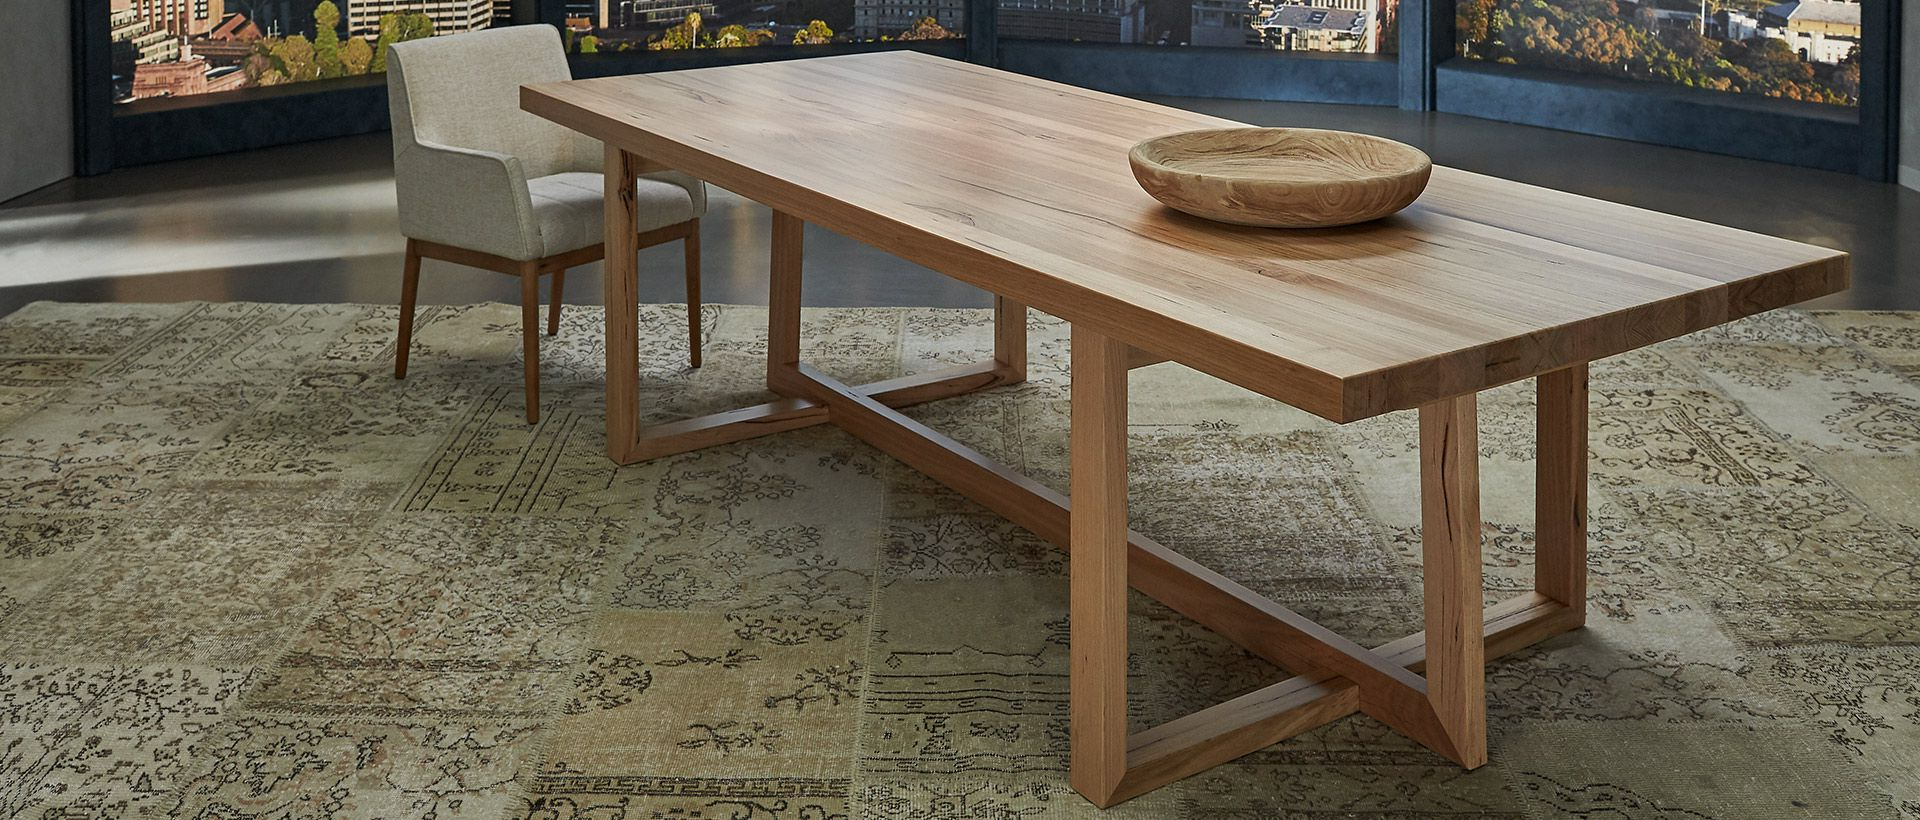 Nick Scali Inside 2018 8 Seater Wood Contemporary Dining Tables With Extension Leaf (View 7 of 30)